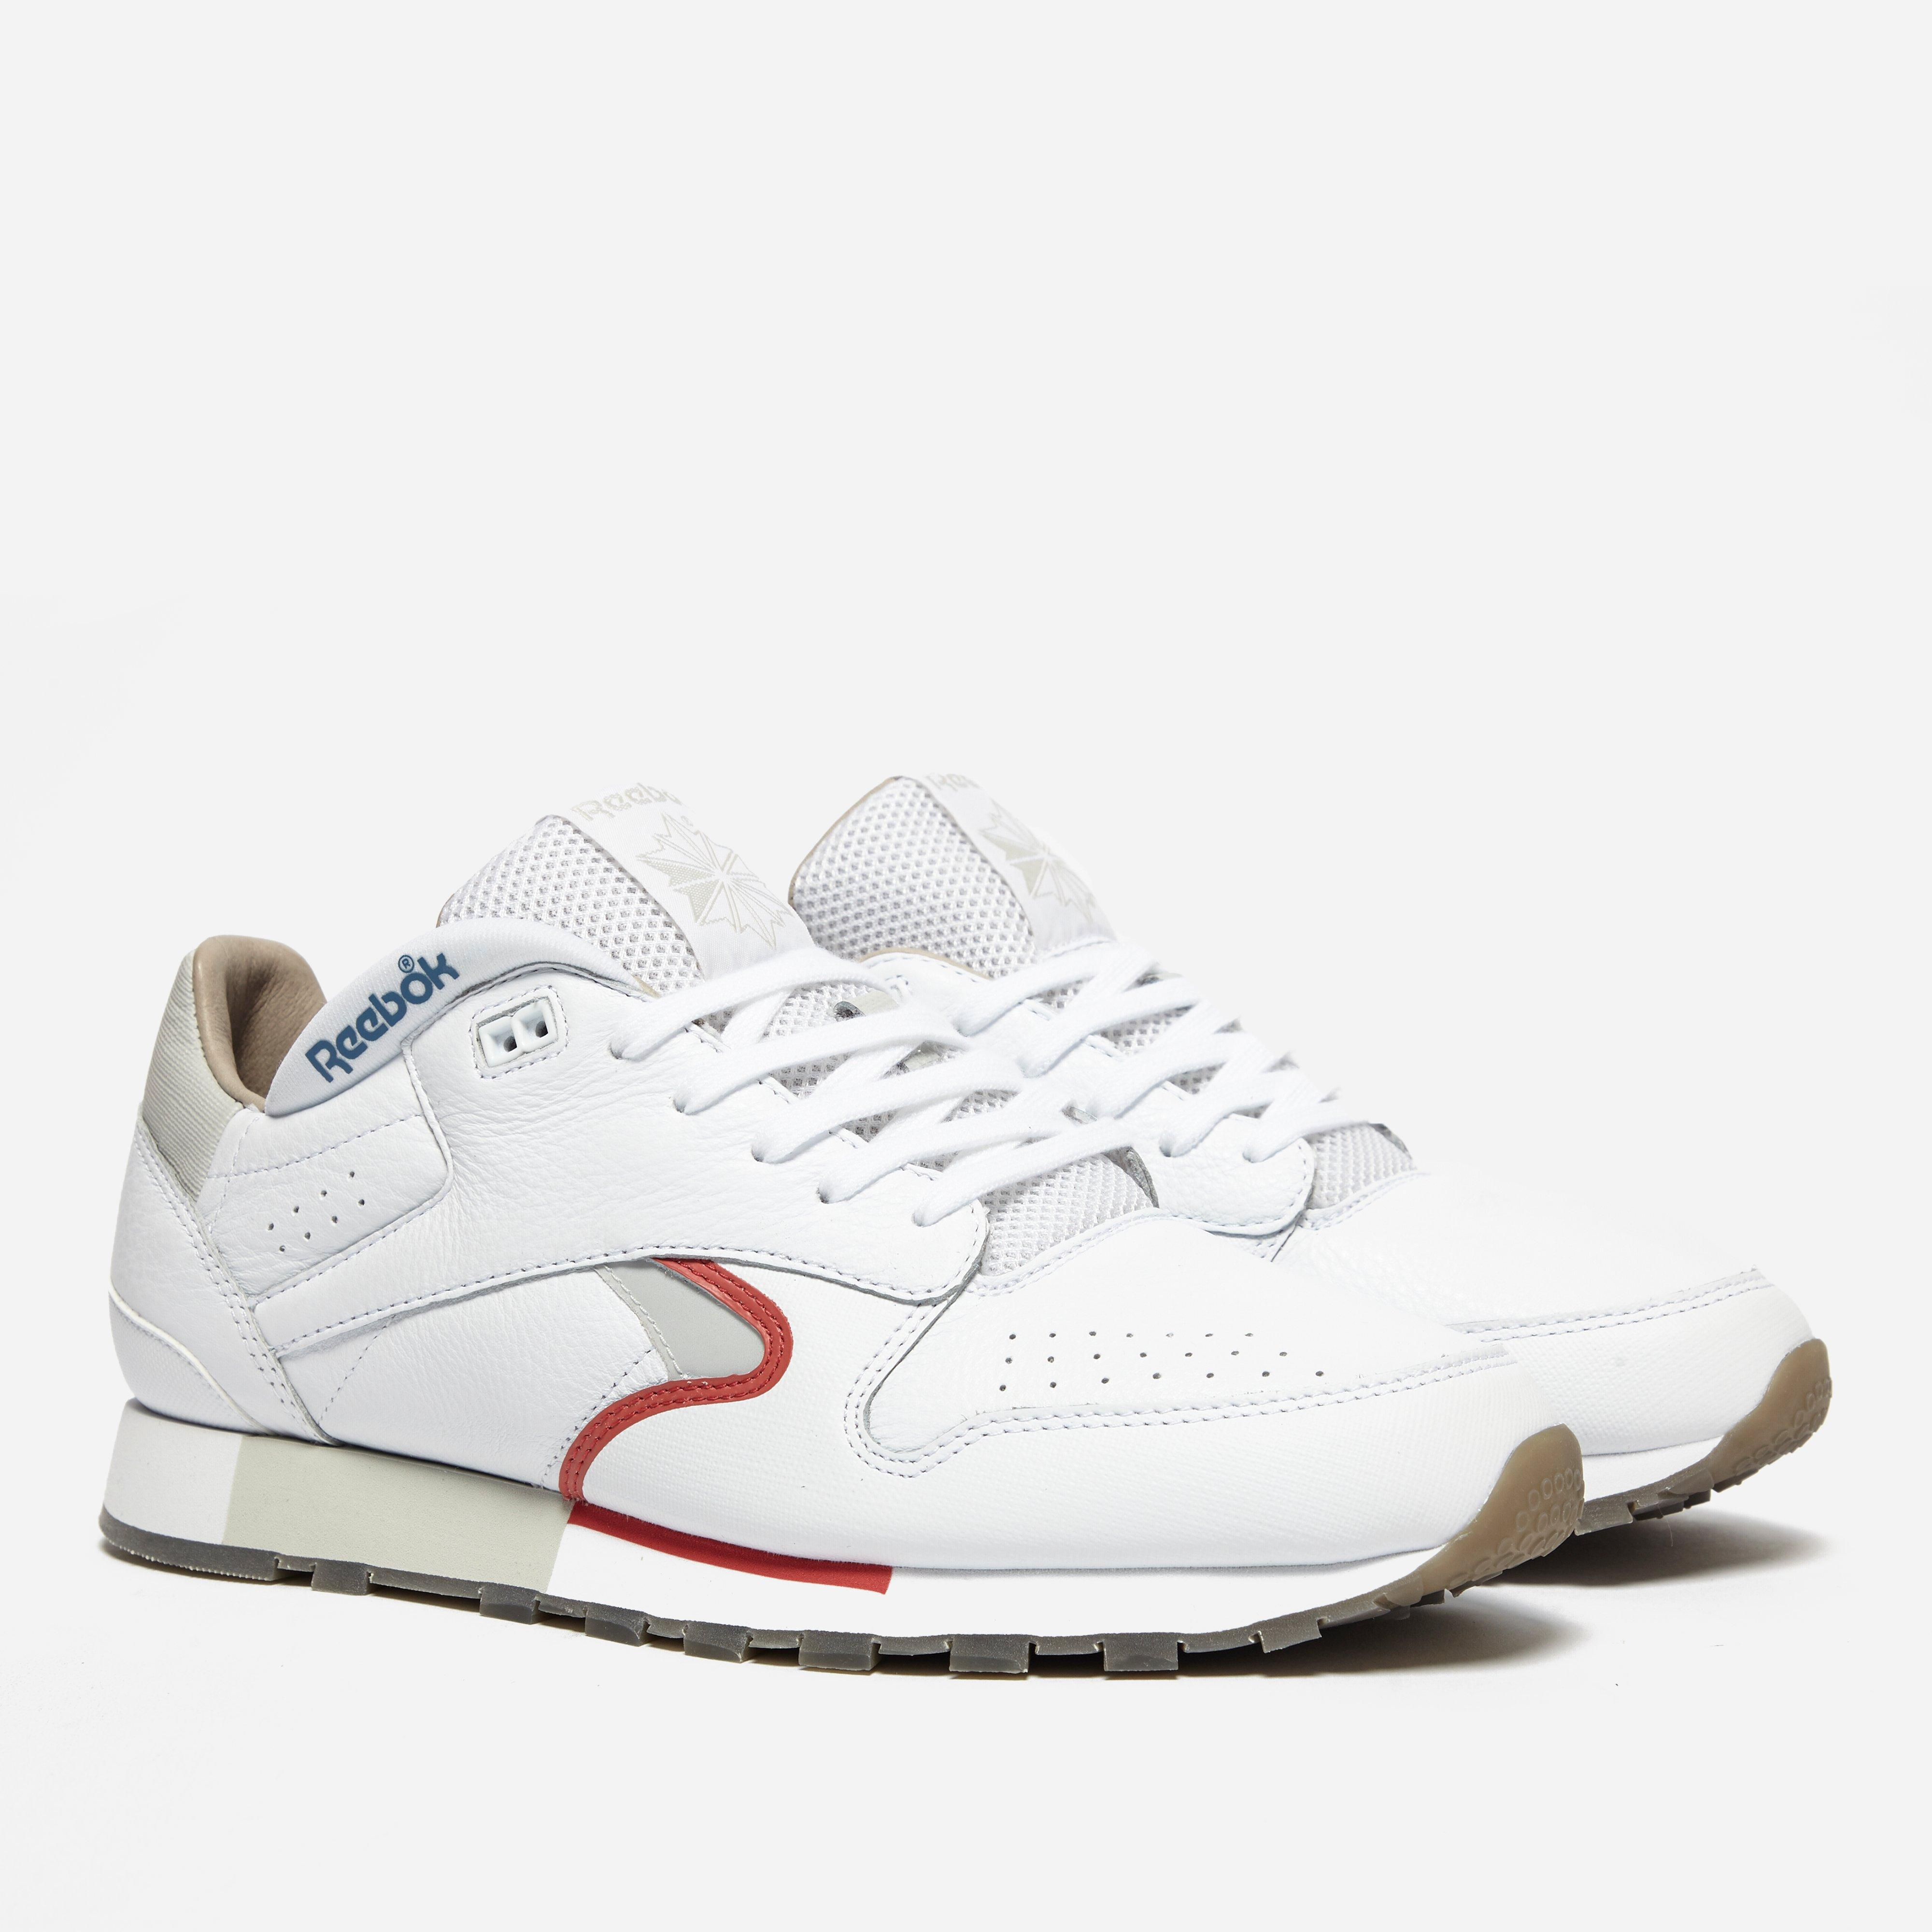 Reebok CL Leather Urge